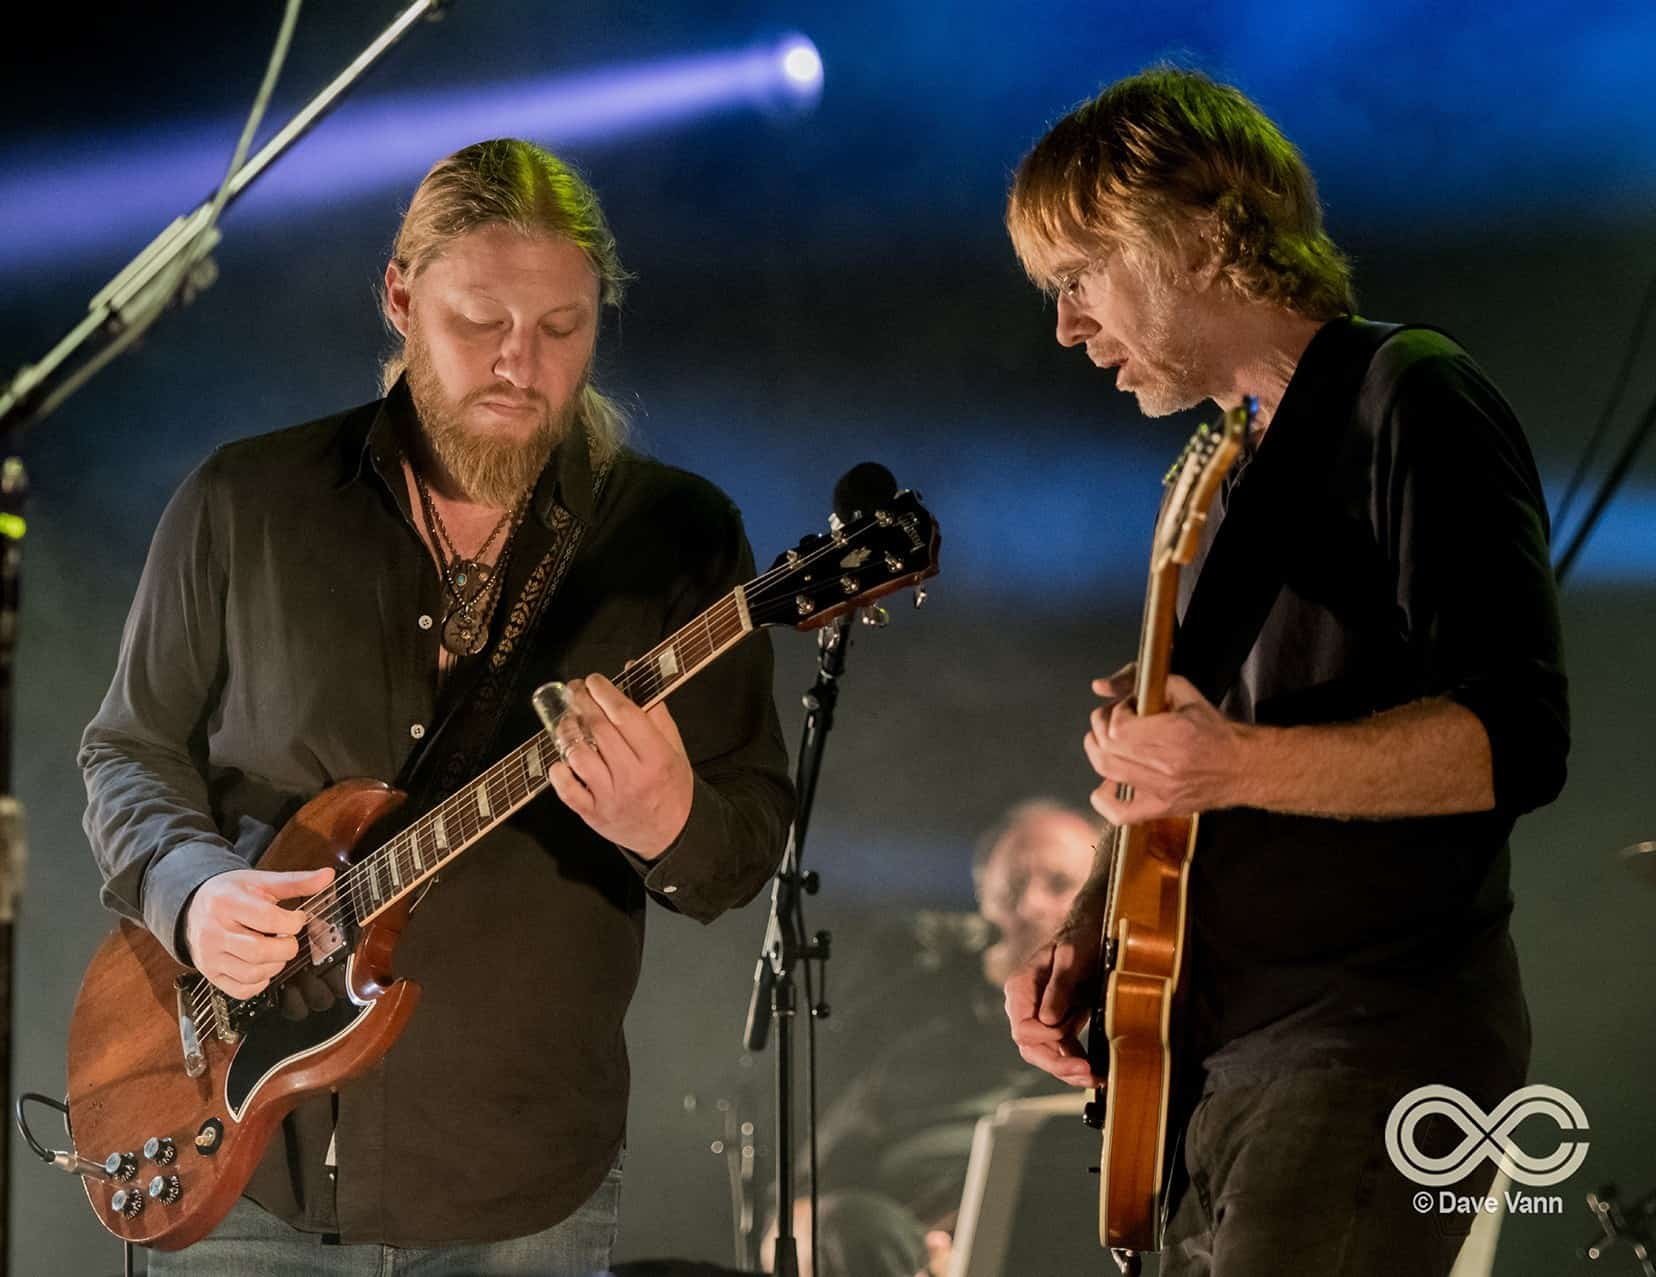 Tedeschi Trucks Band with w/Trey Anastasio and Doyle Bramhall II-Layla